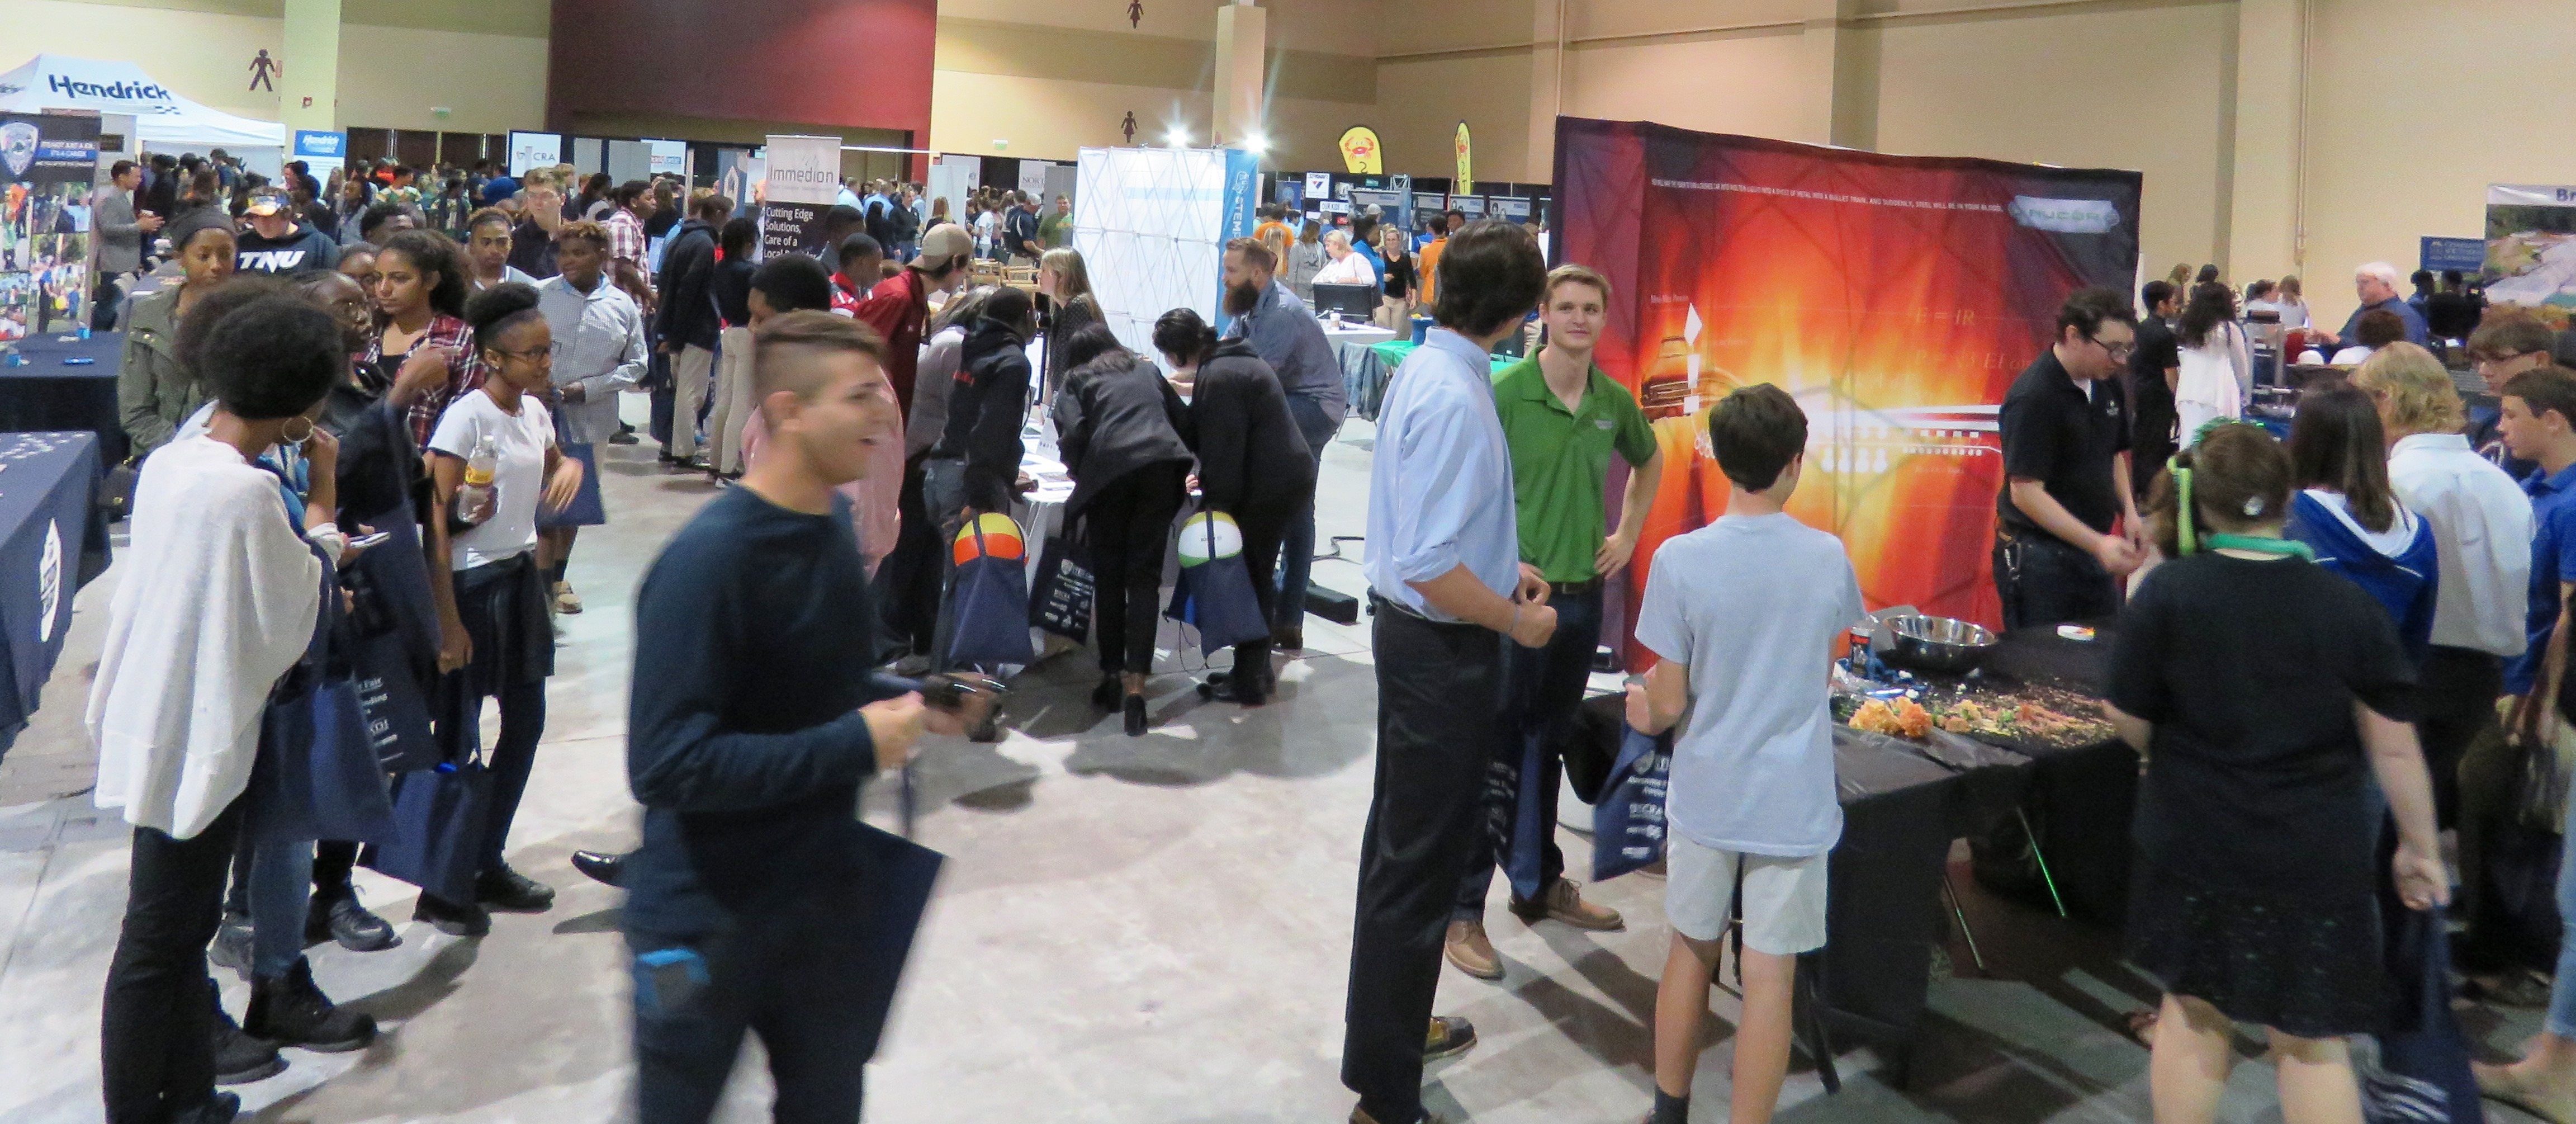 CCSD CTE   Over 2000 Students Attend 2nd Annual High School STEM